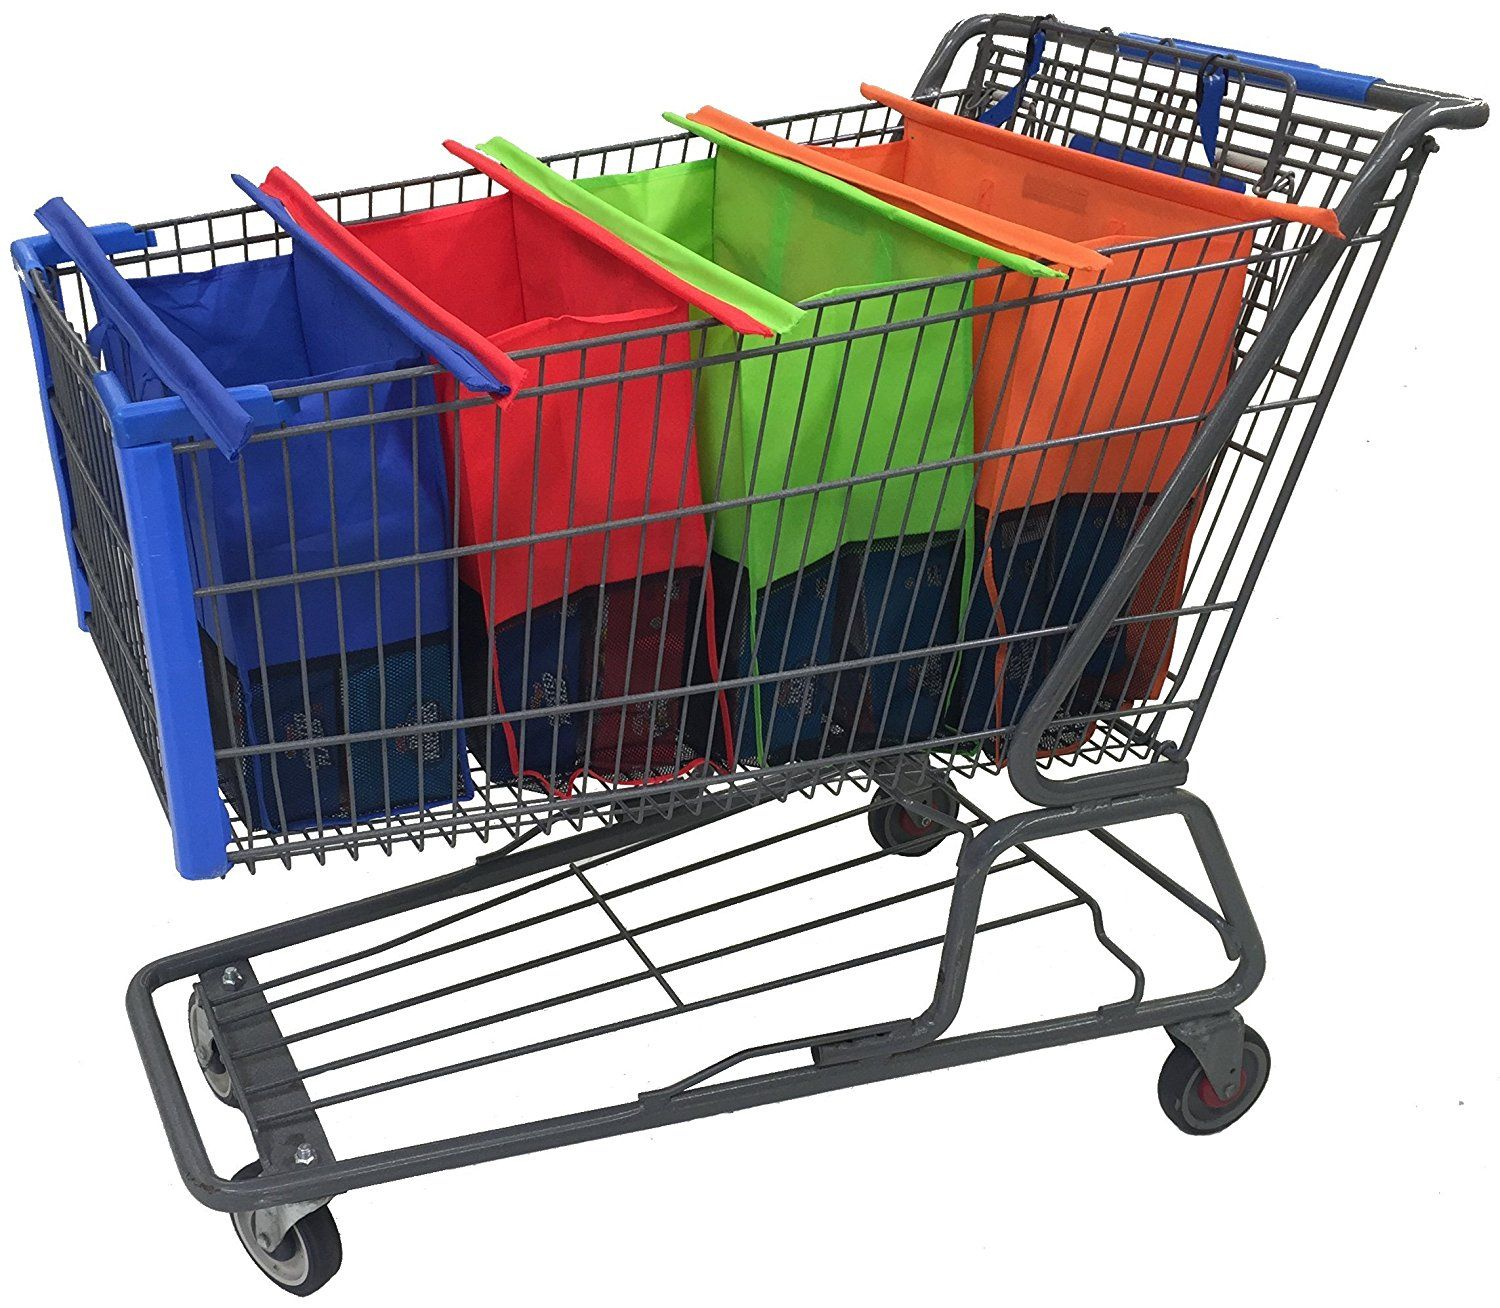 Amazon.com: Shopping Cart Trolley Bags by: Modern Day LivingTM - 4 ...